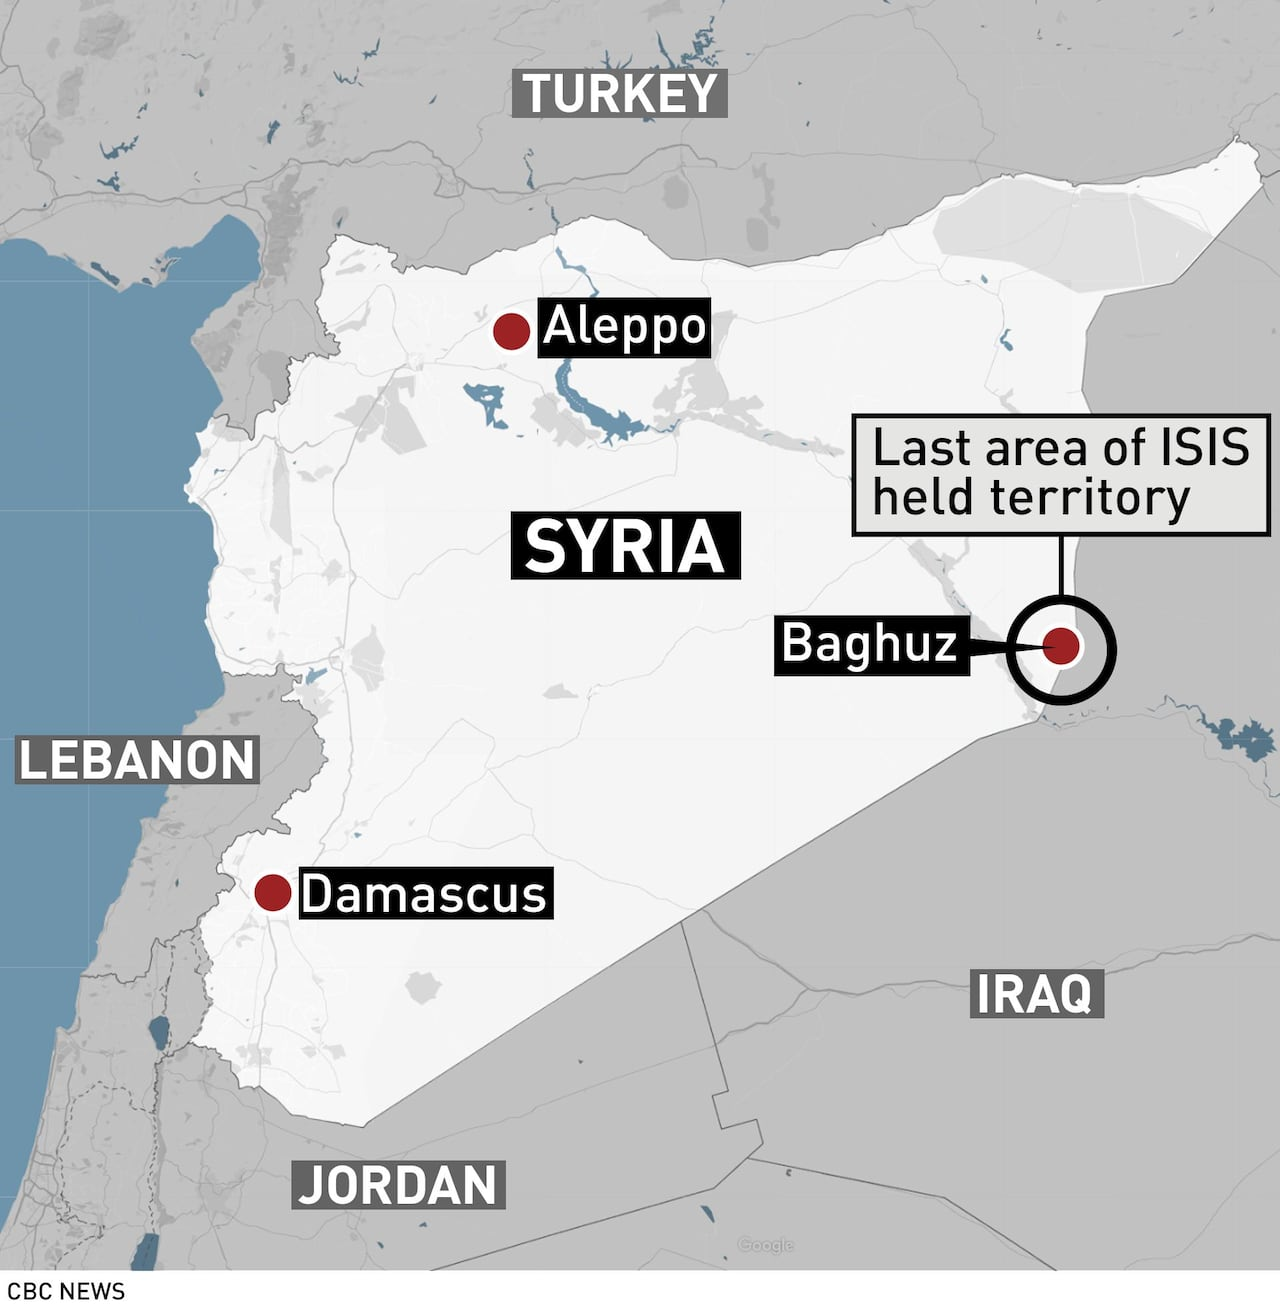 Coalition warplanes hit last ISIS enclave in eastern Syria | CBC News